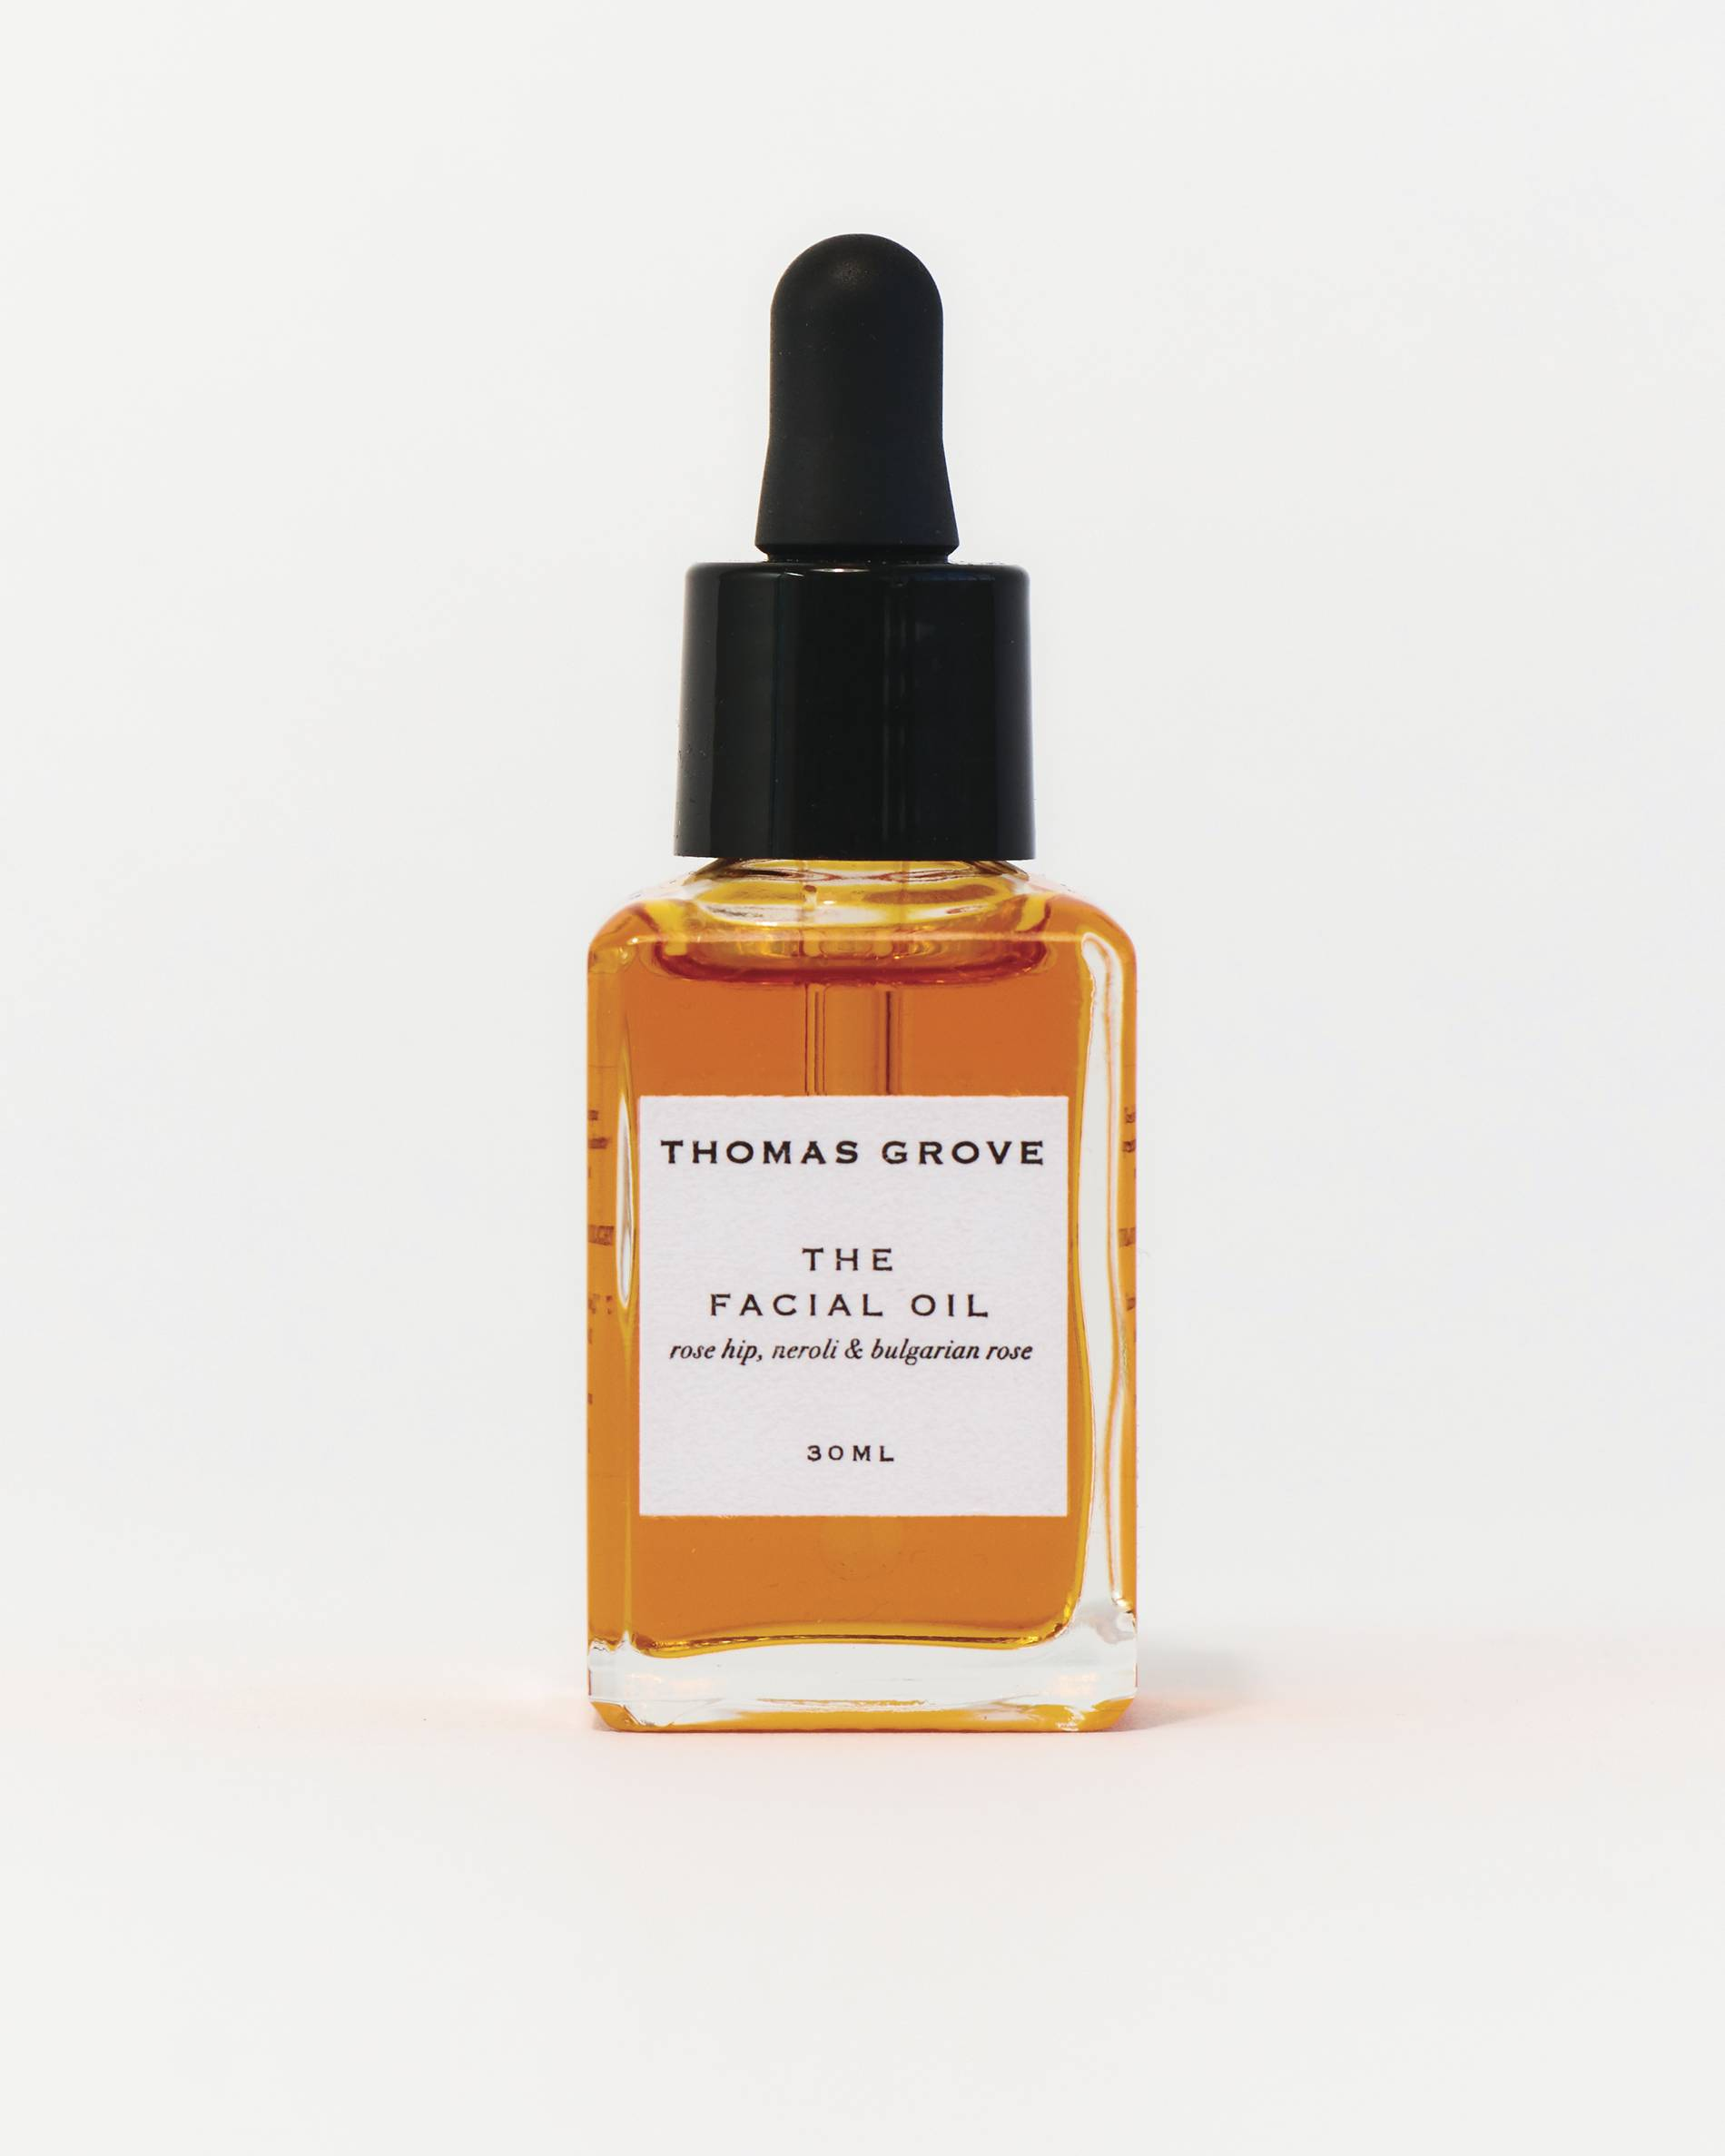 Thomas Grove The Facial Oil Image